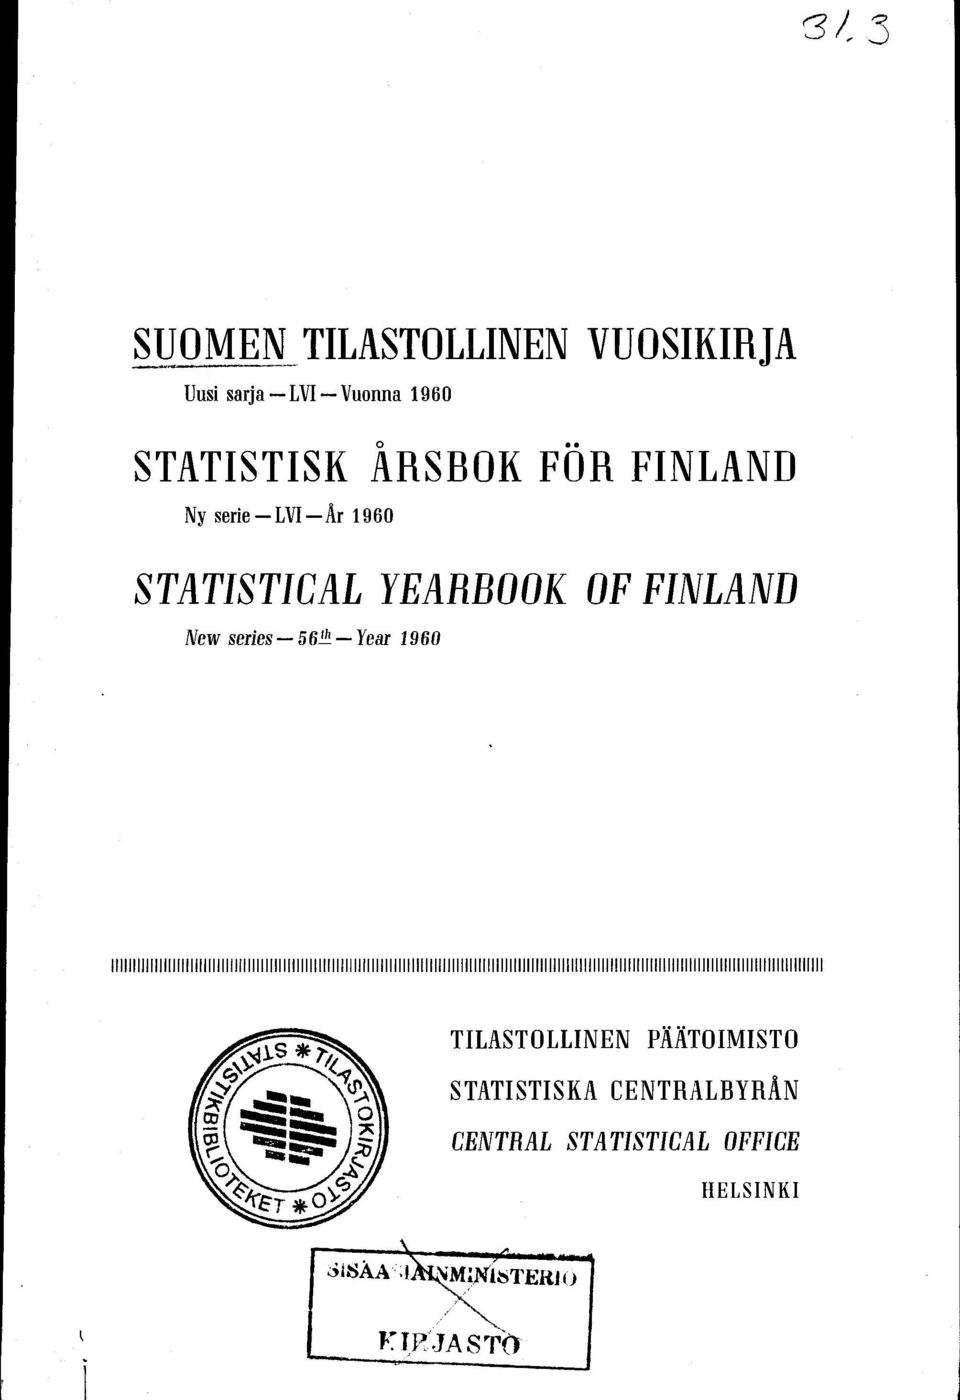 YEARBOOK OF FINLAND New series 5 61h Year 1960 TILASTOLLINEN